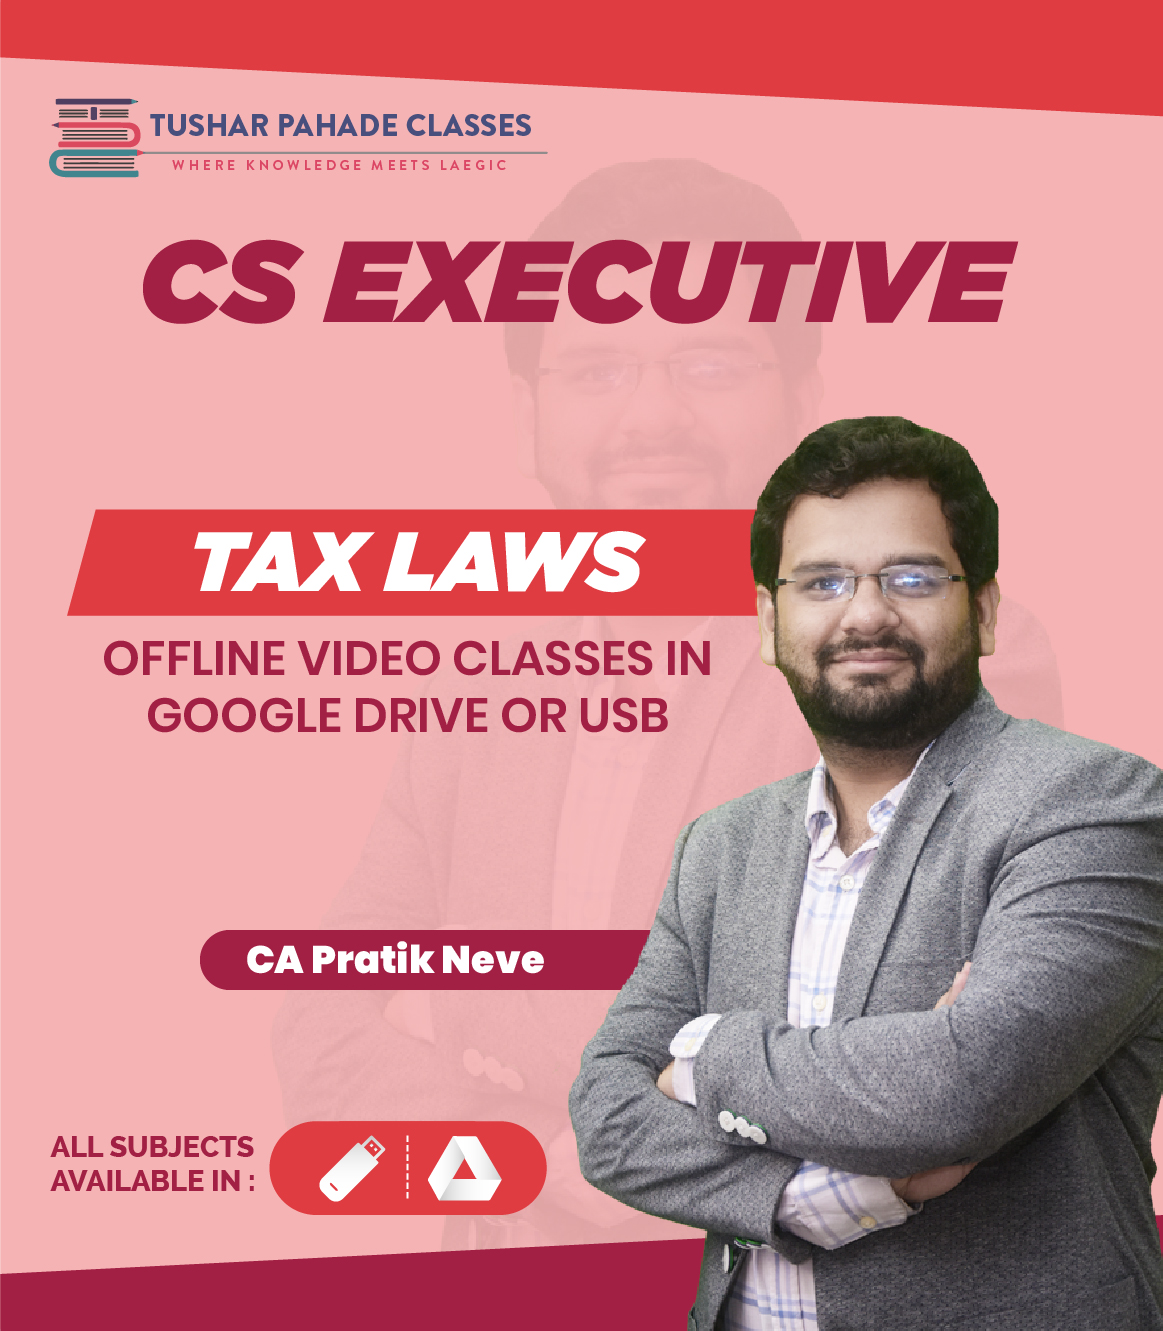 CS Executive Tax law video lectures by CA Pratik Neve